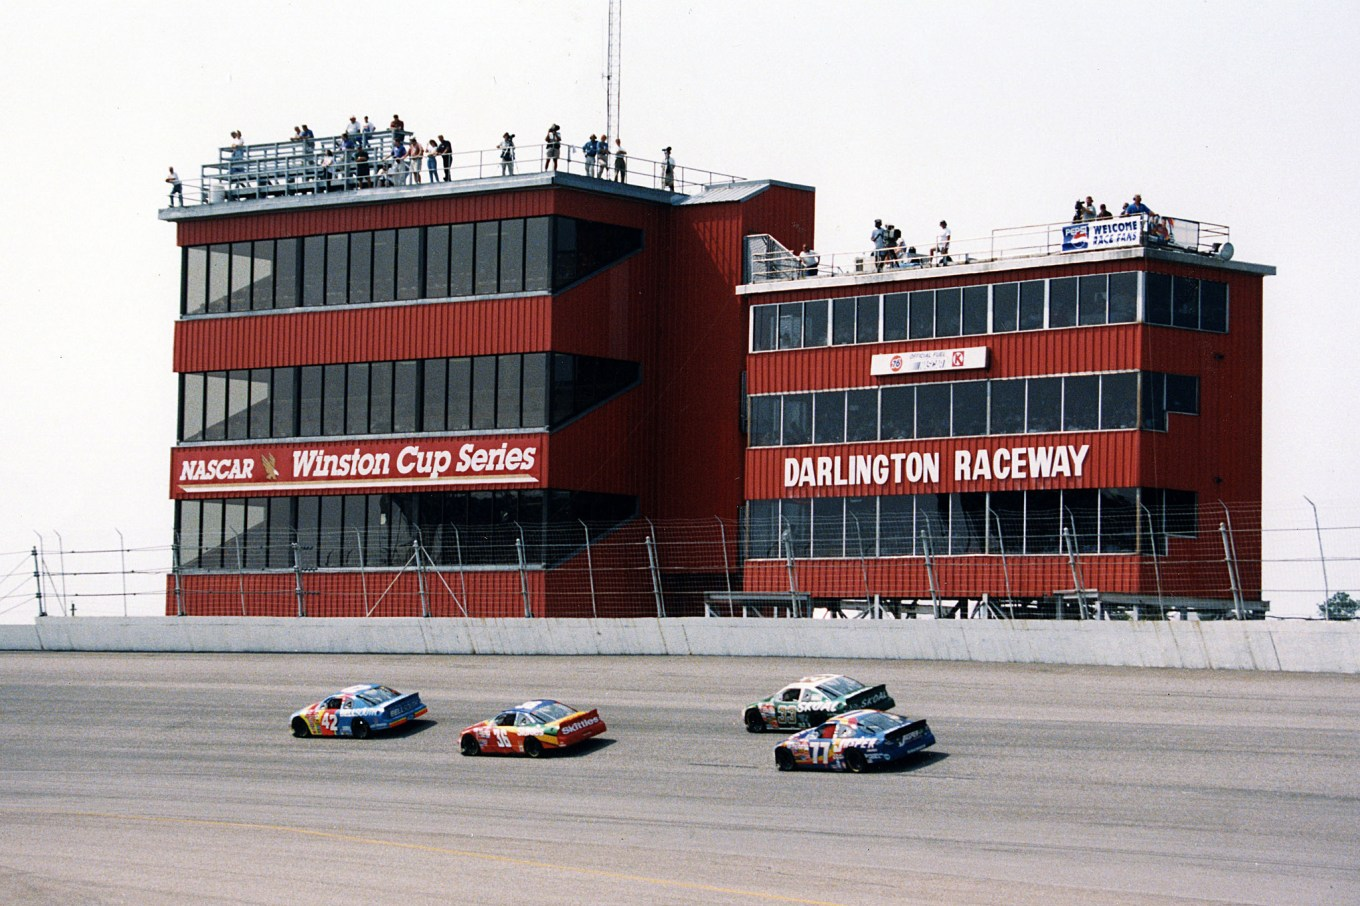 Darlington 1998